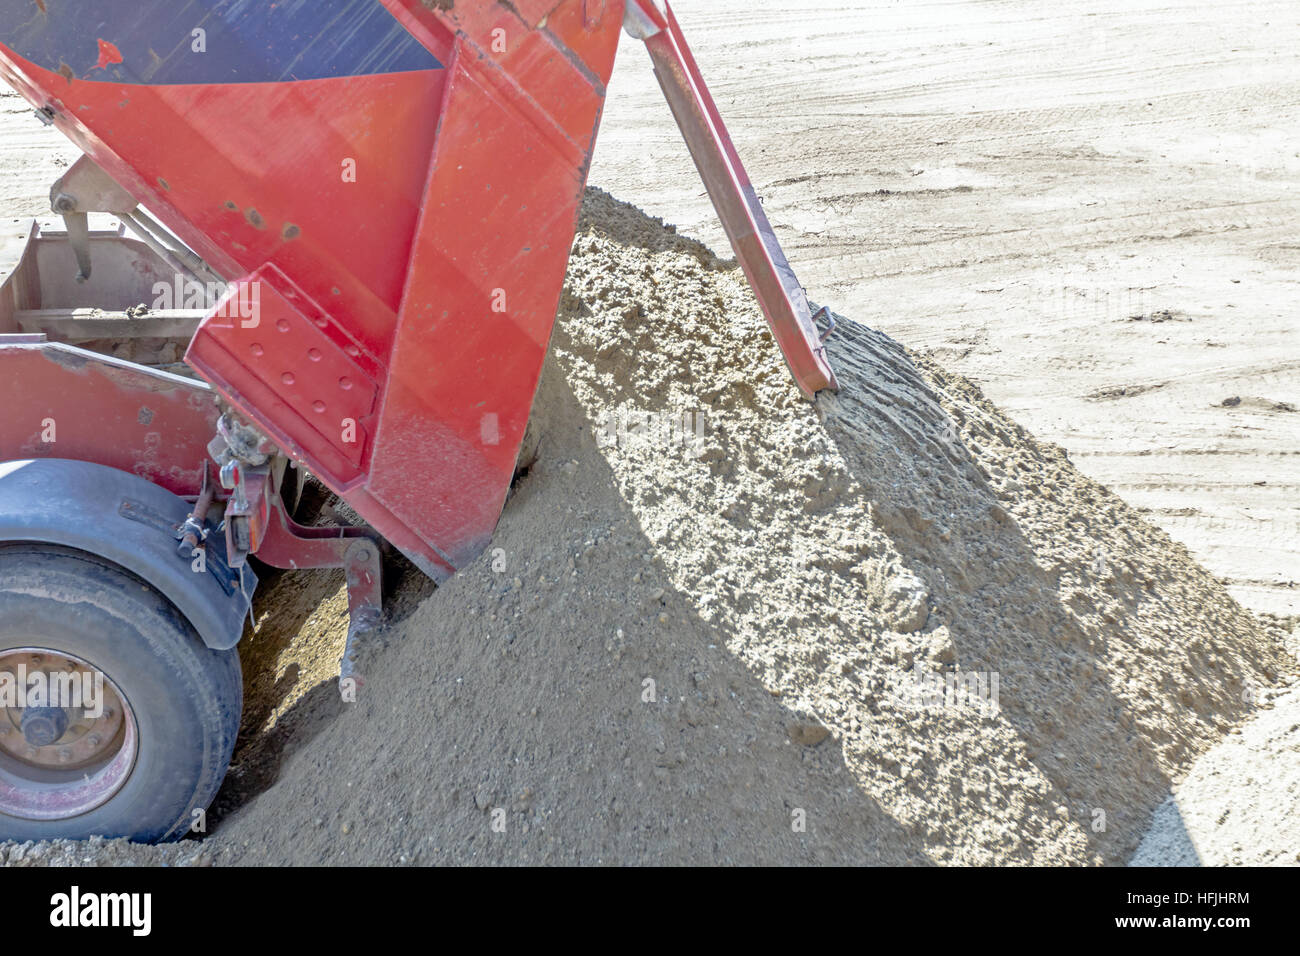 Red dumper truck is unloading sand at construction site. - Stock Image